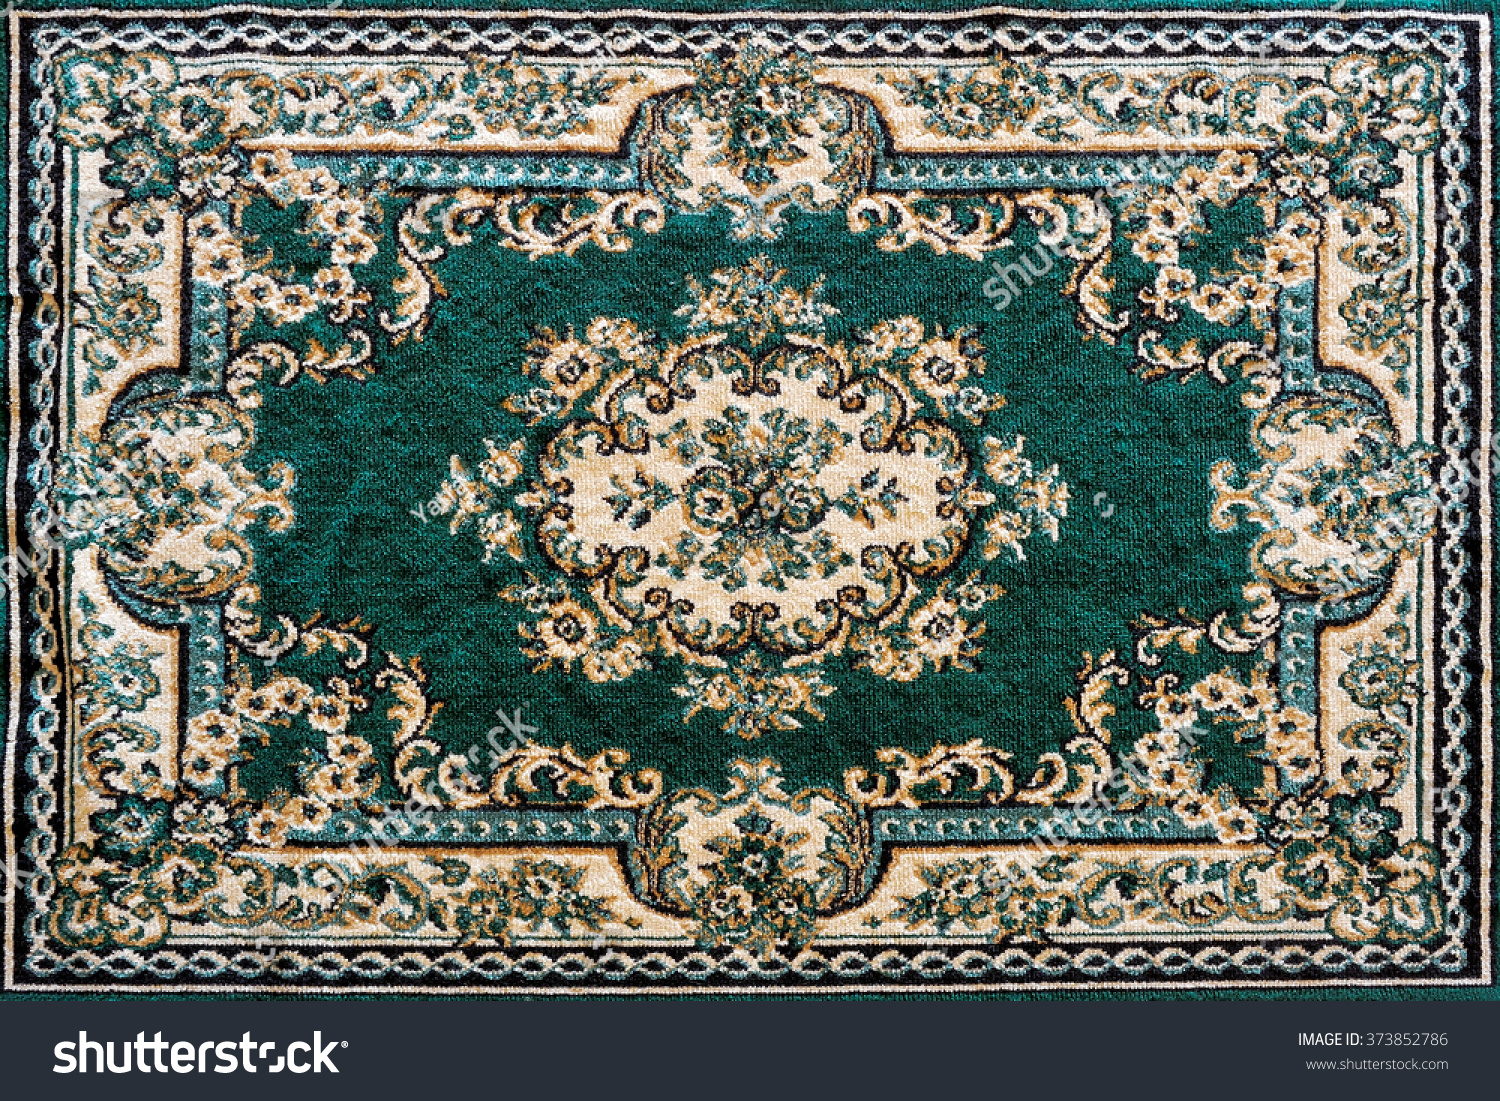 Patterns of Persian carpets